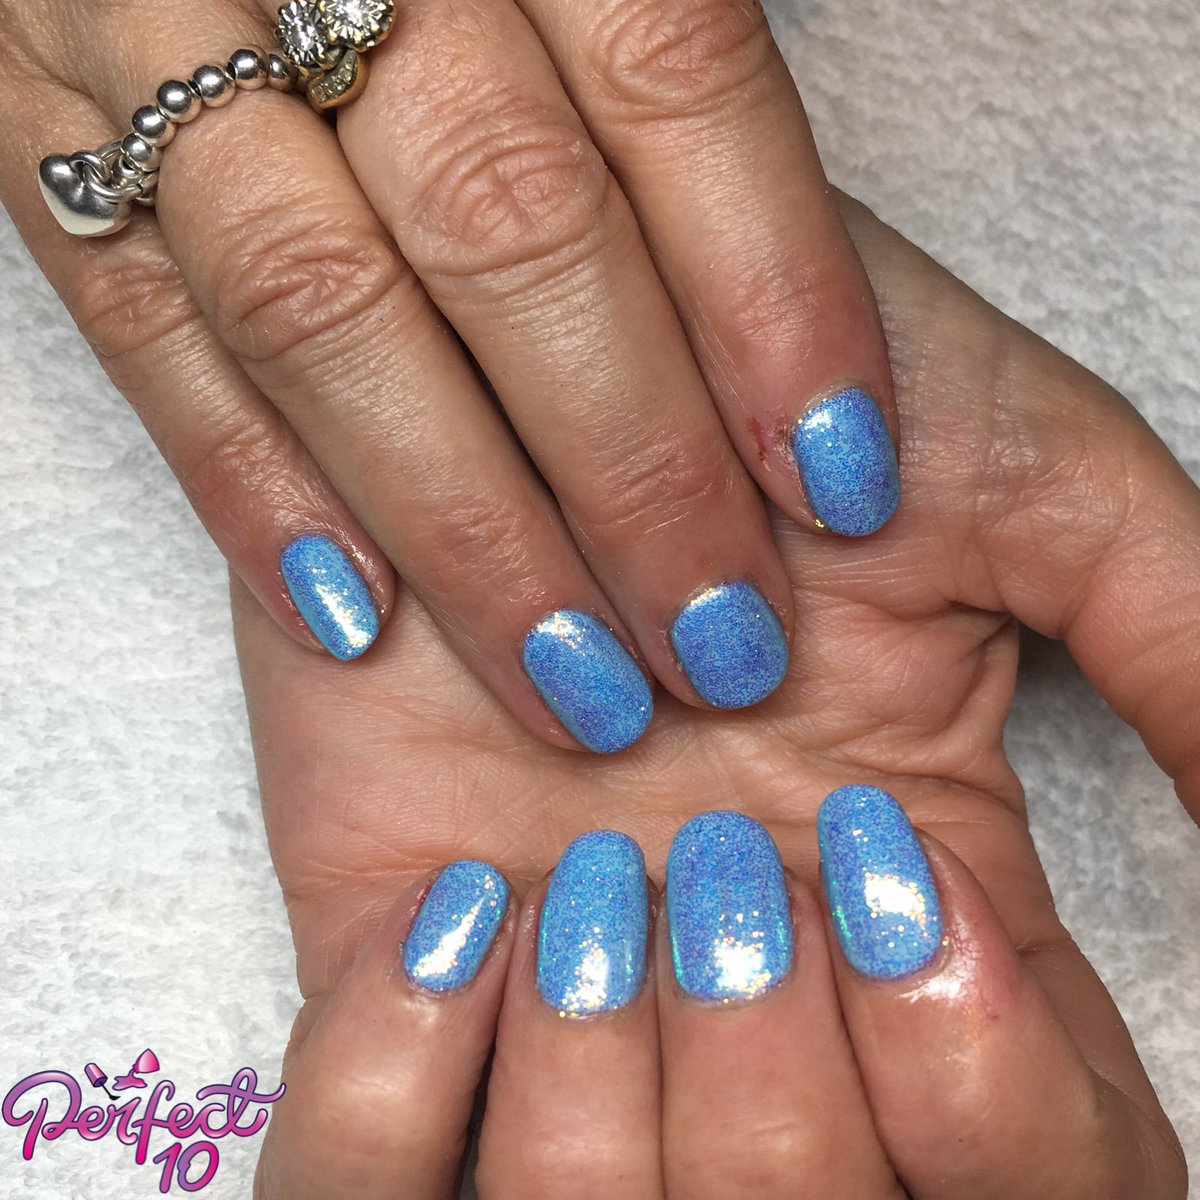 Perfect 10 Mobile Nail Services on Twitter: \